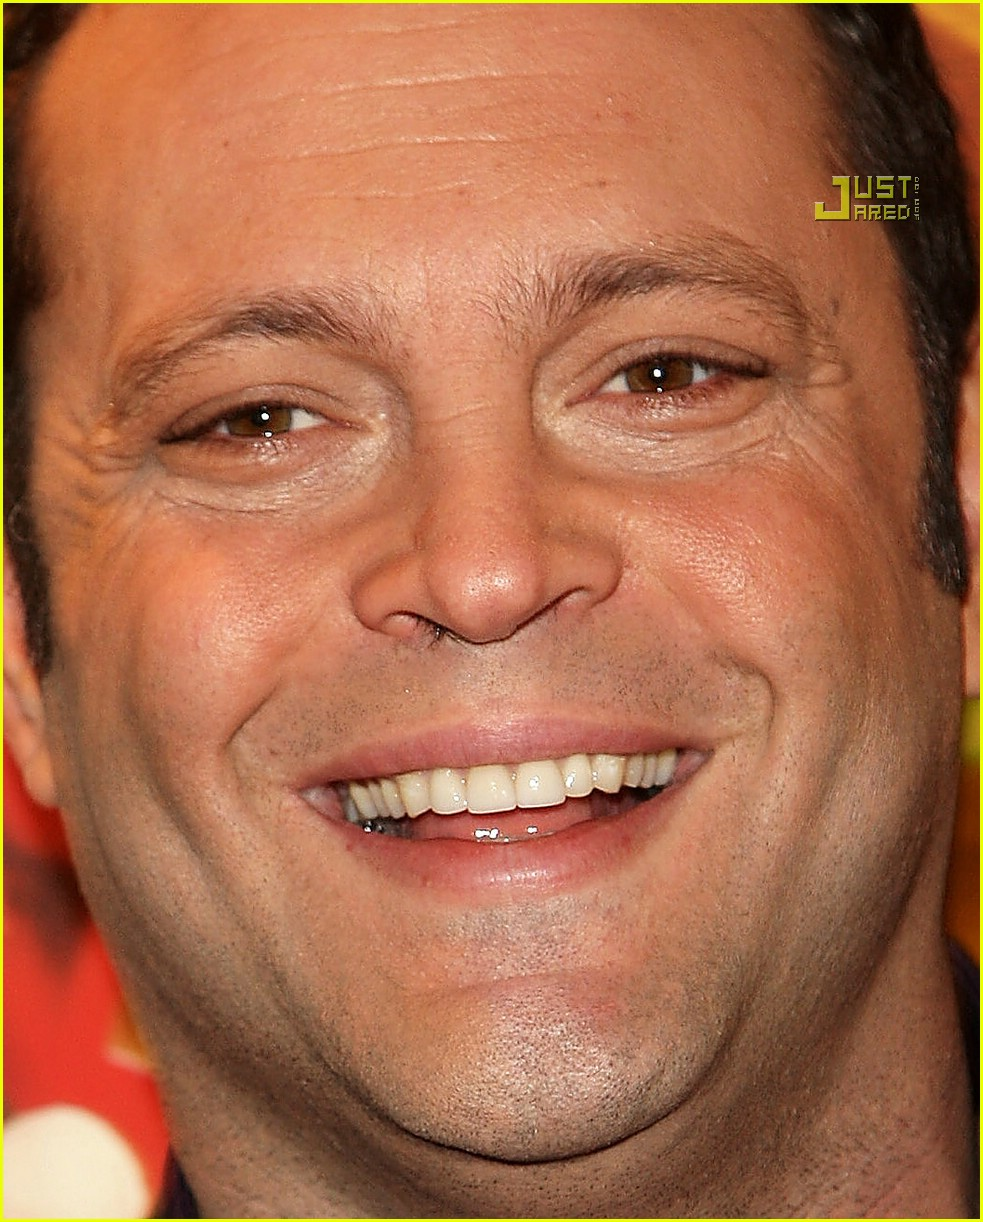 Vince vaughn nose hairs gone wild photo 747691 vince vaughn vince vaughn nose hairs gone wild urmus Image collections